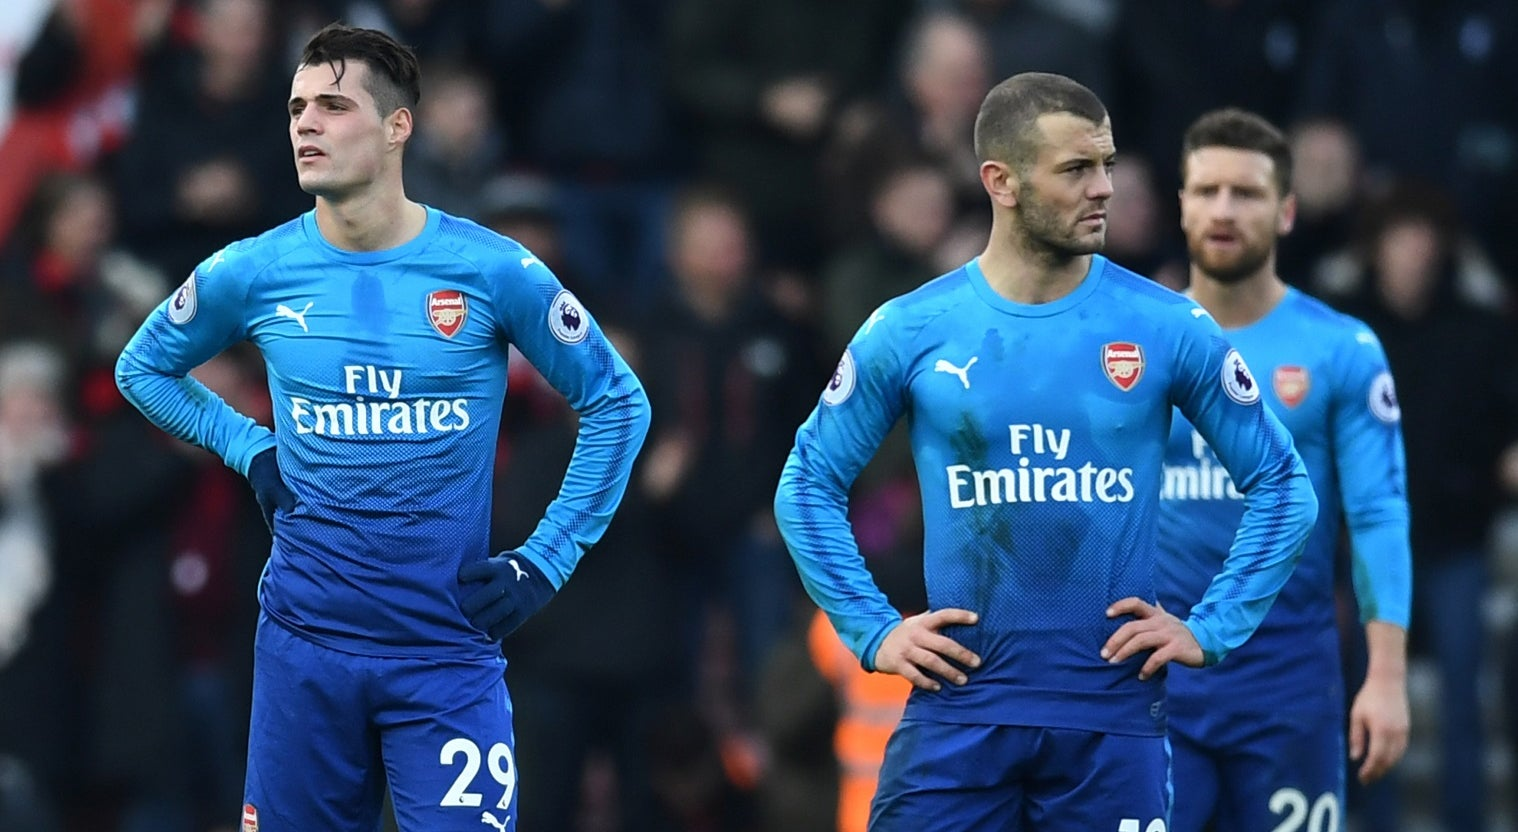 Arsenal volta a perder, desta vez no campo do Bournemouth